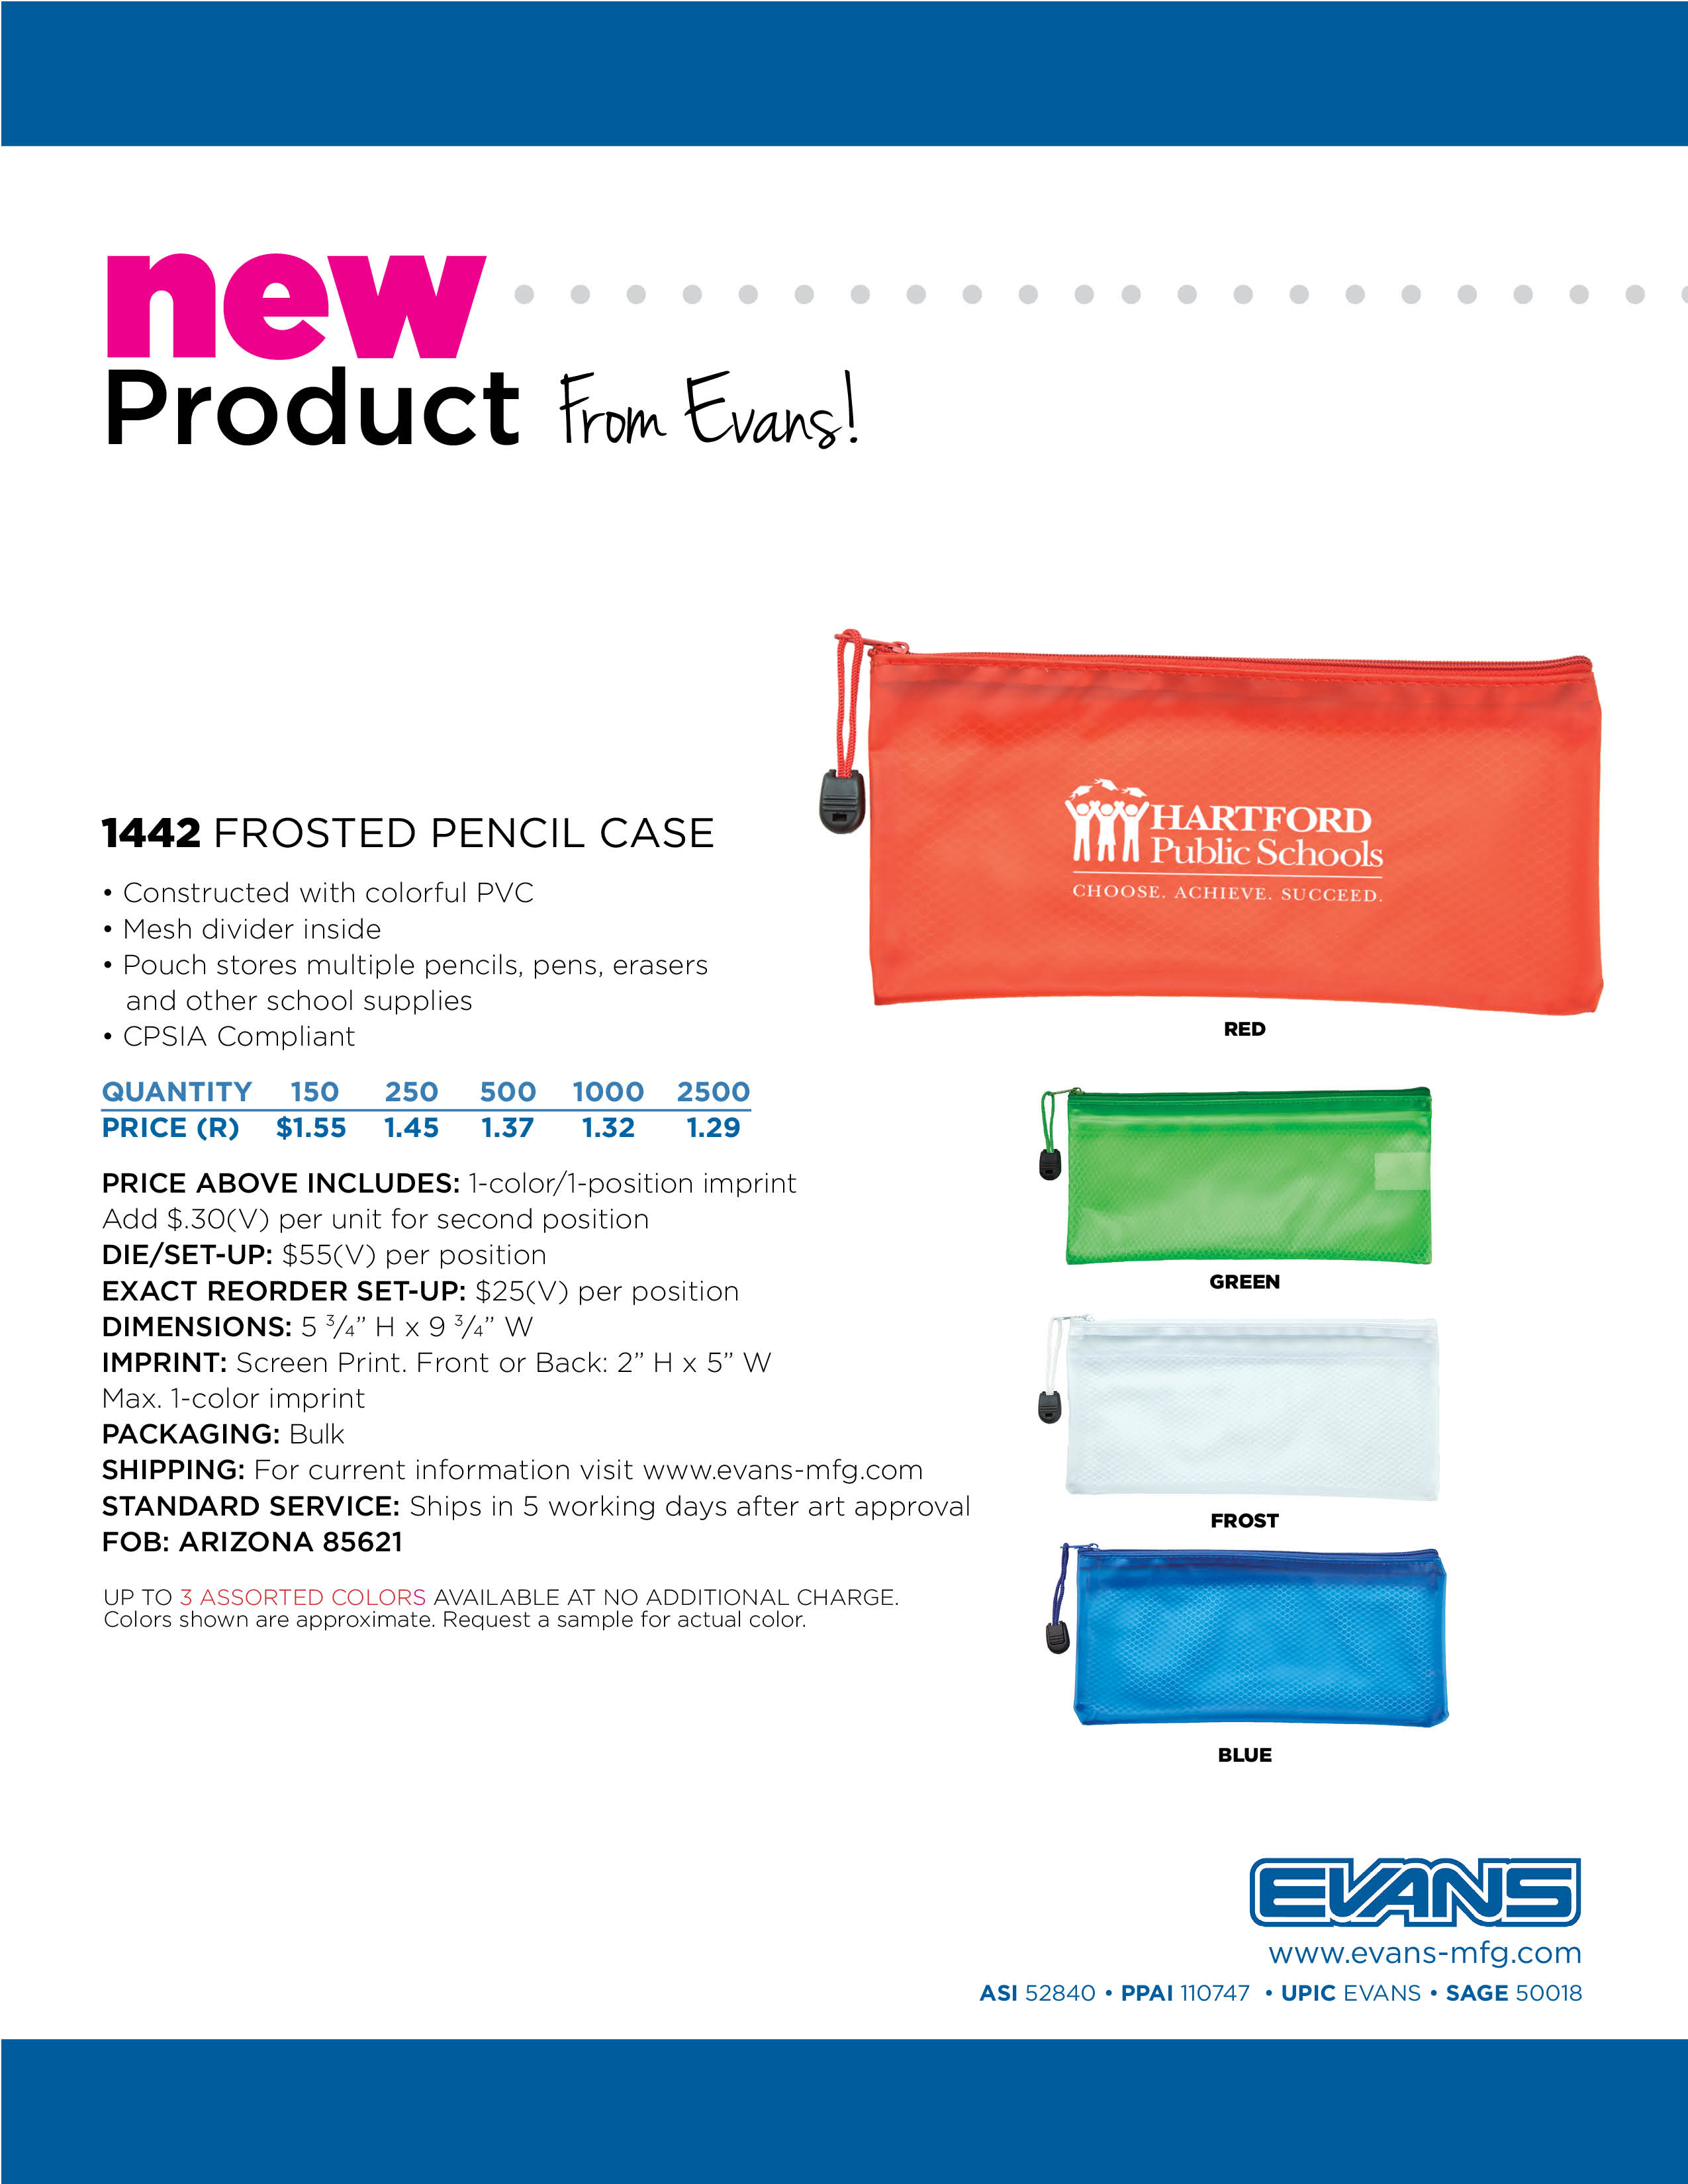 1442 Frosted Pencil Case